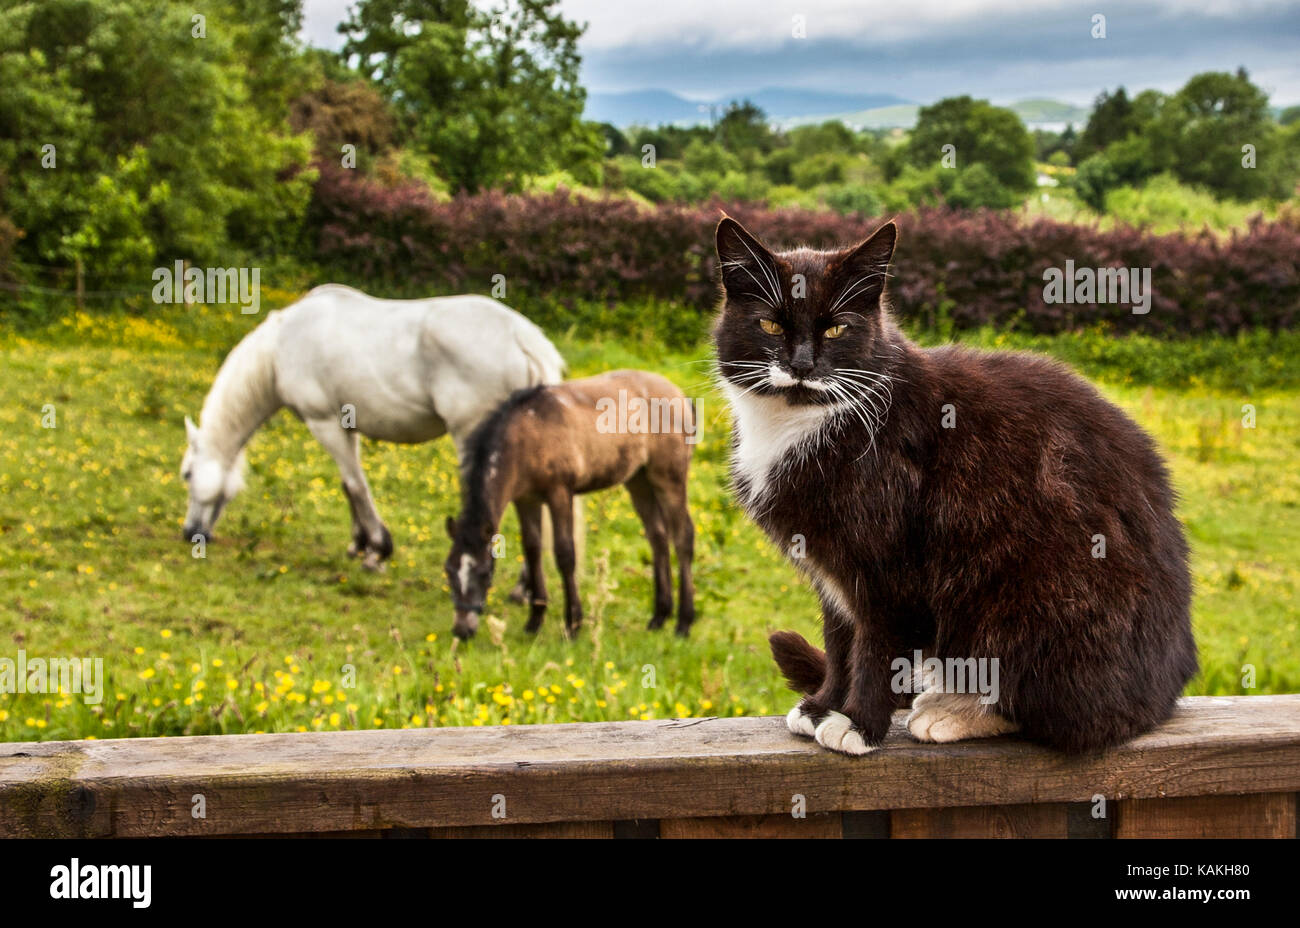 A domestic black and white  cat and white Kalamare horse with colt, Bantry, Ireland,  Europe - Stock Image